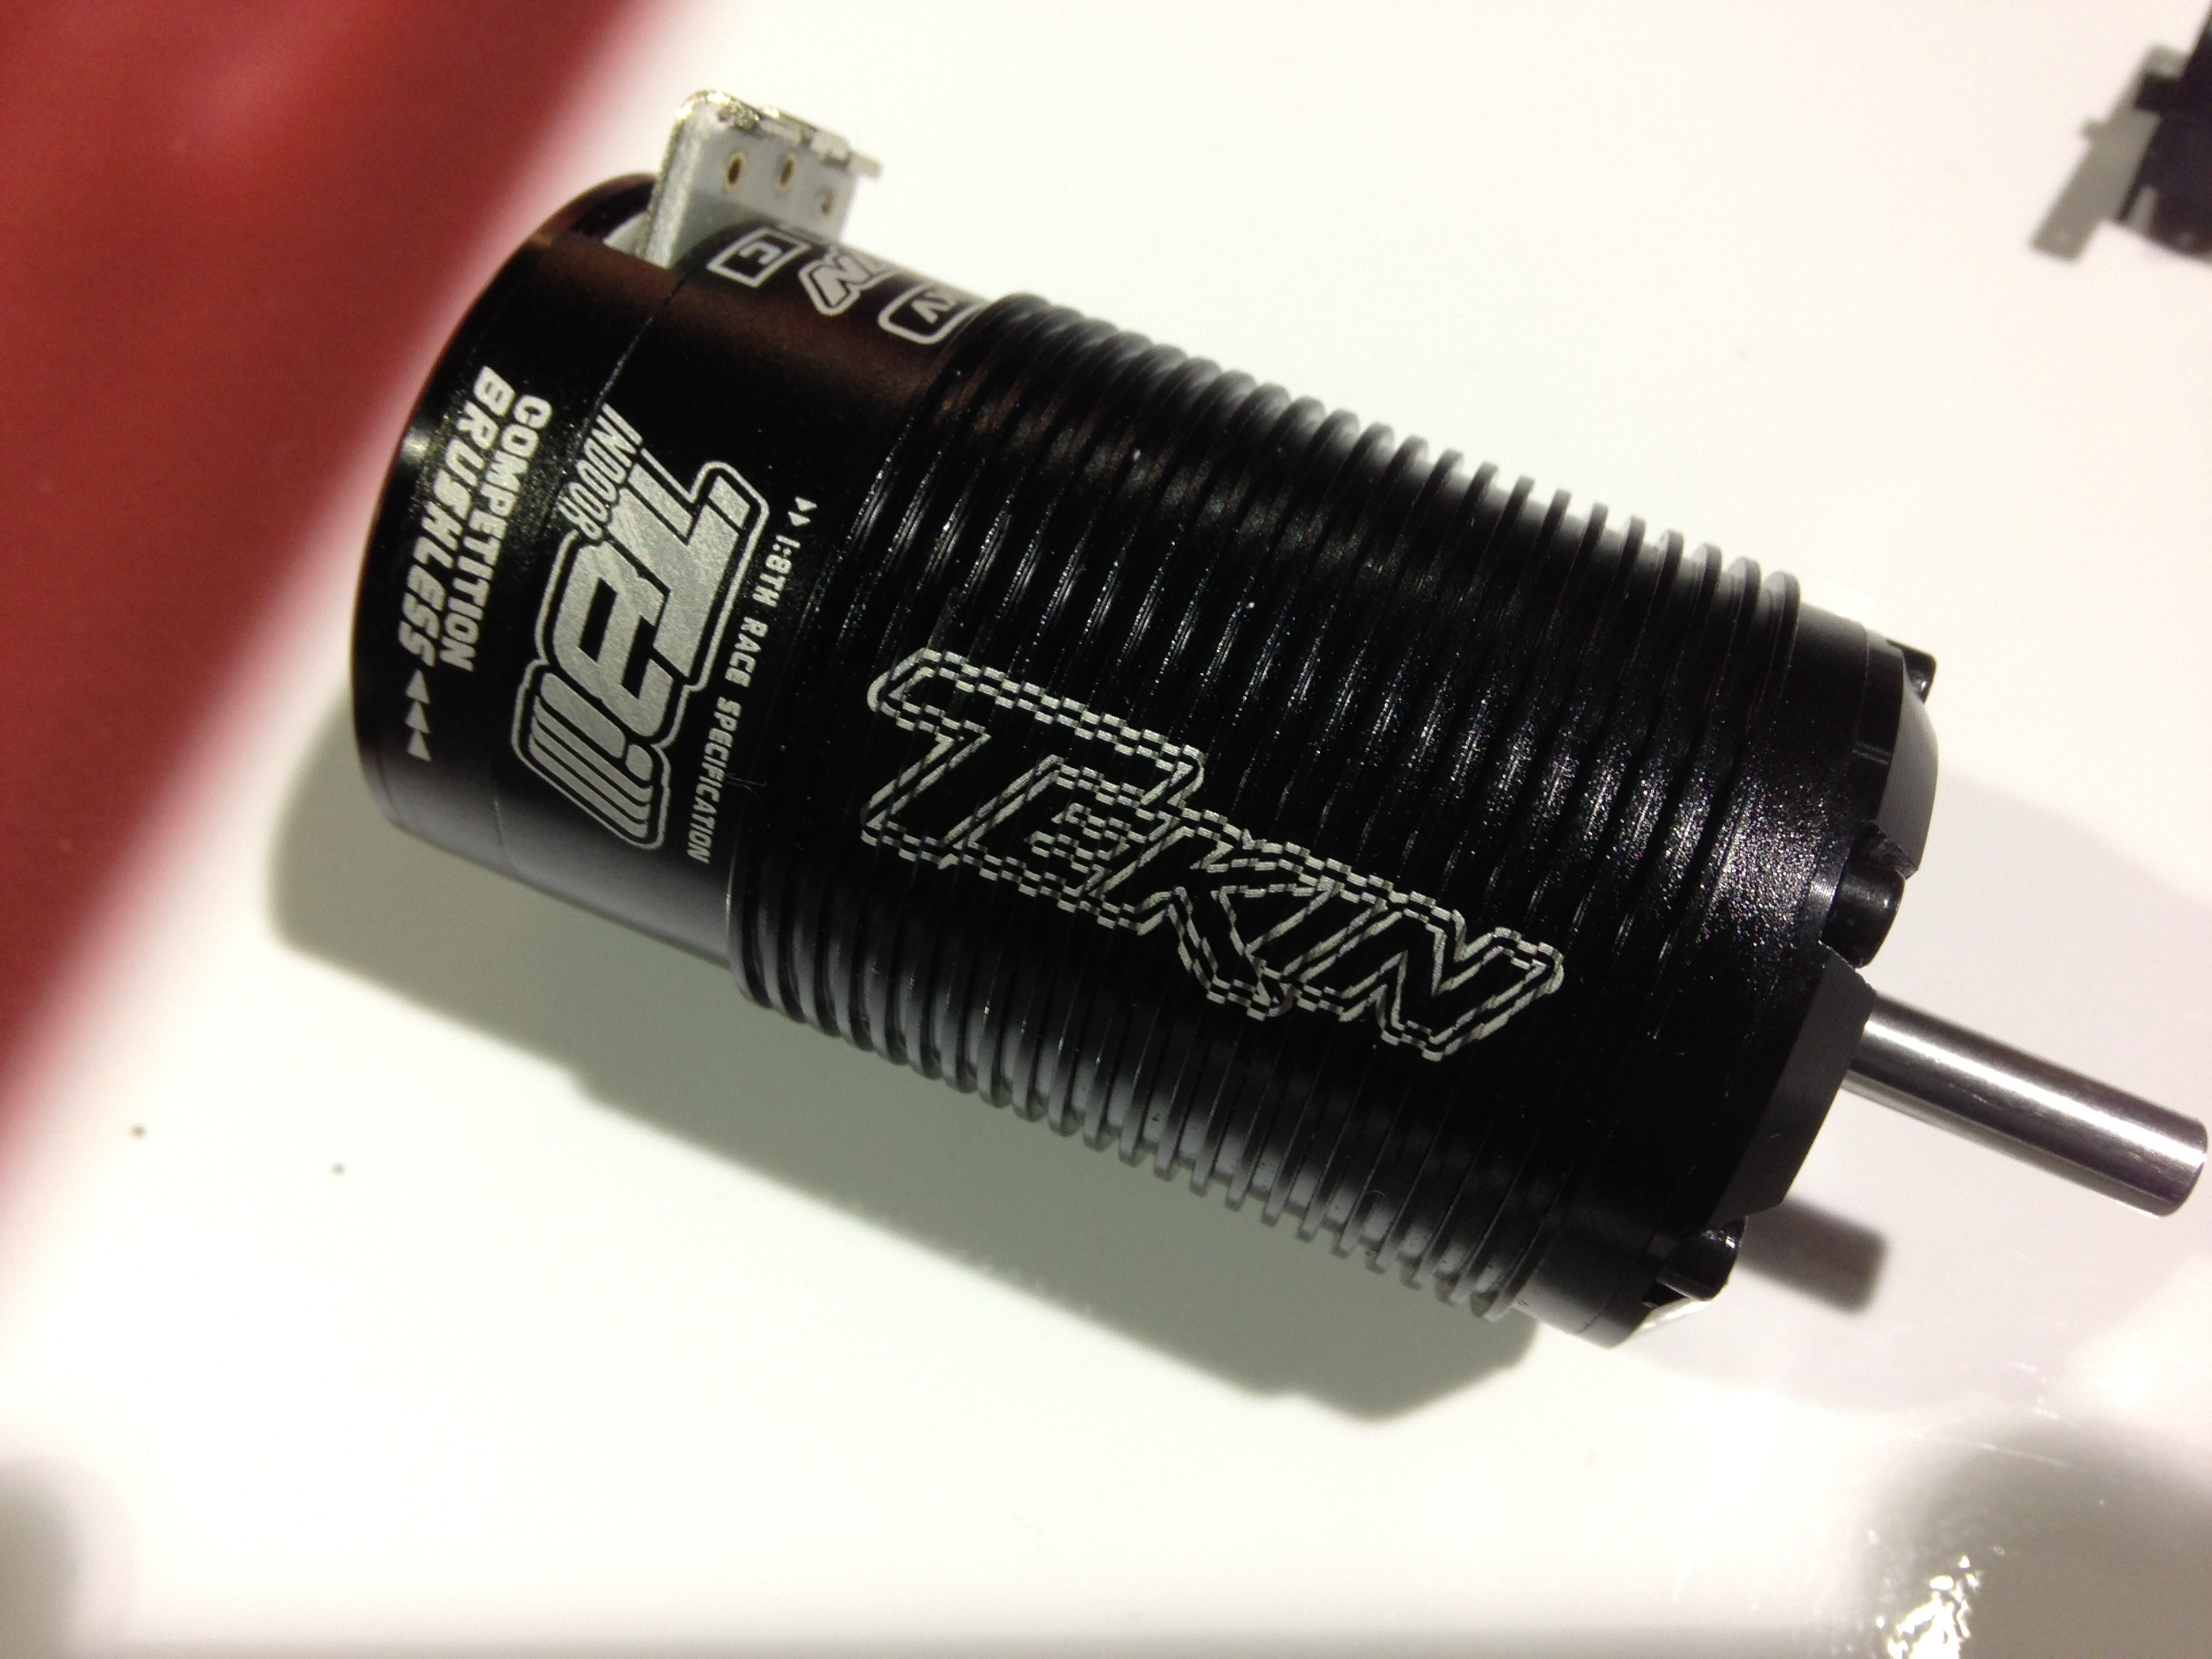 Tekin announces T8i indoor-specific brushless motor